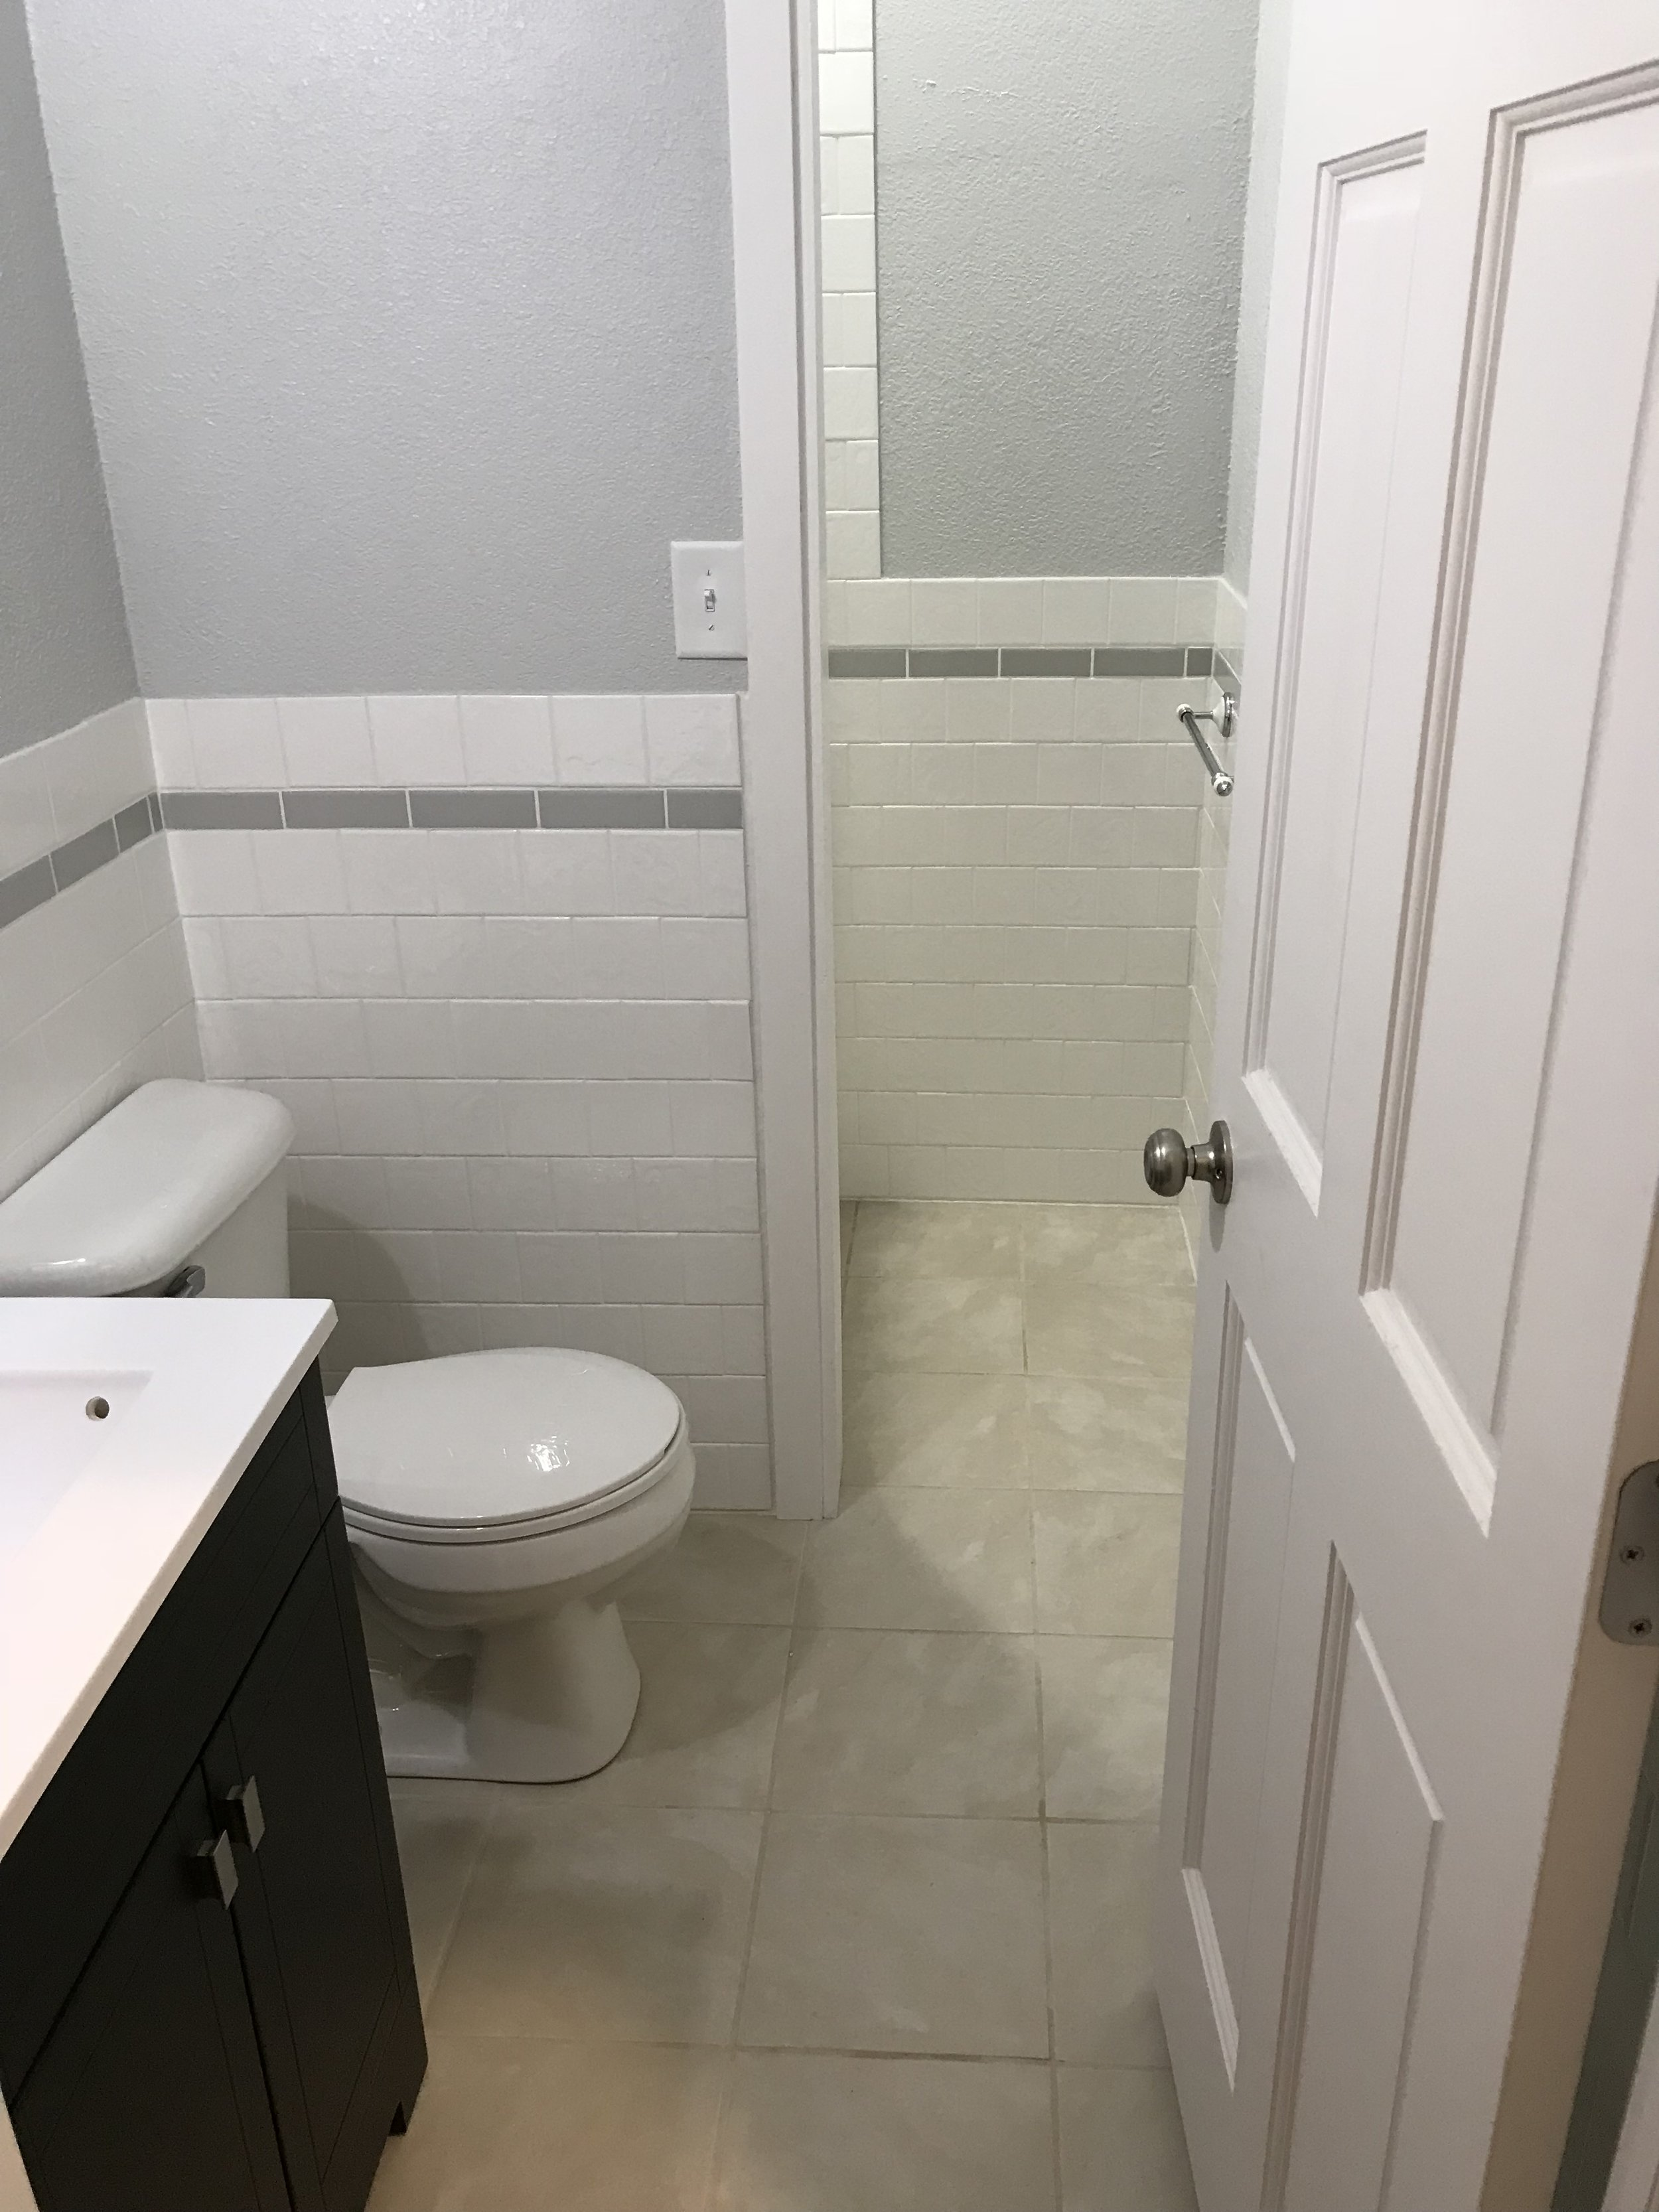 Bath with tiled walls